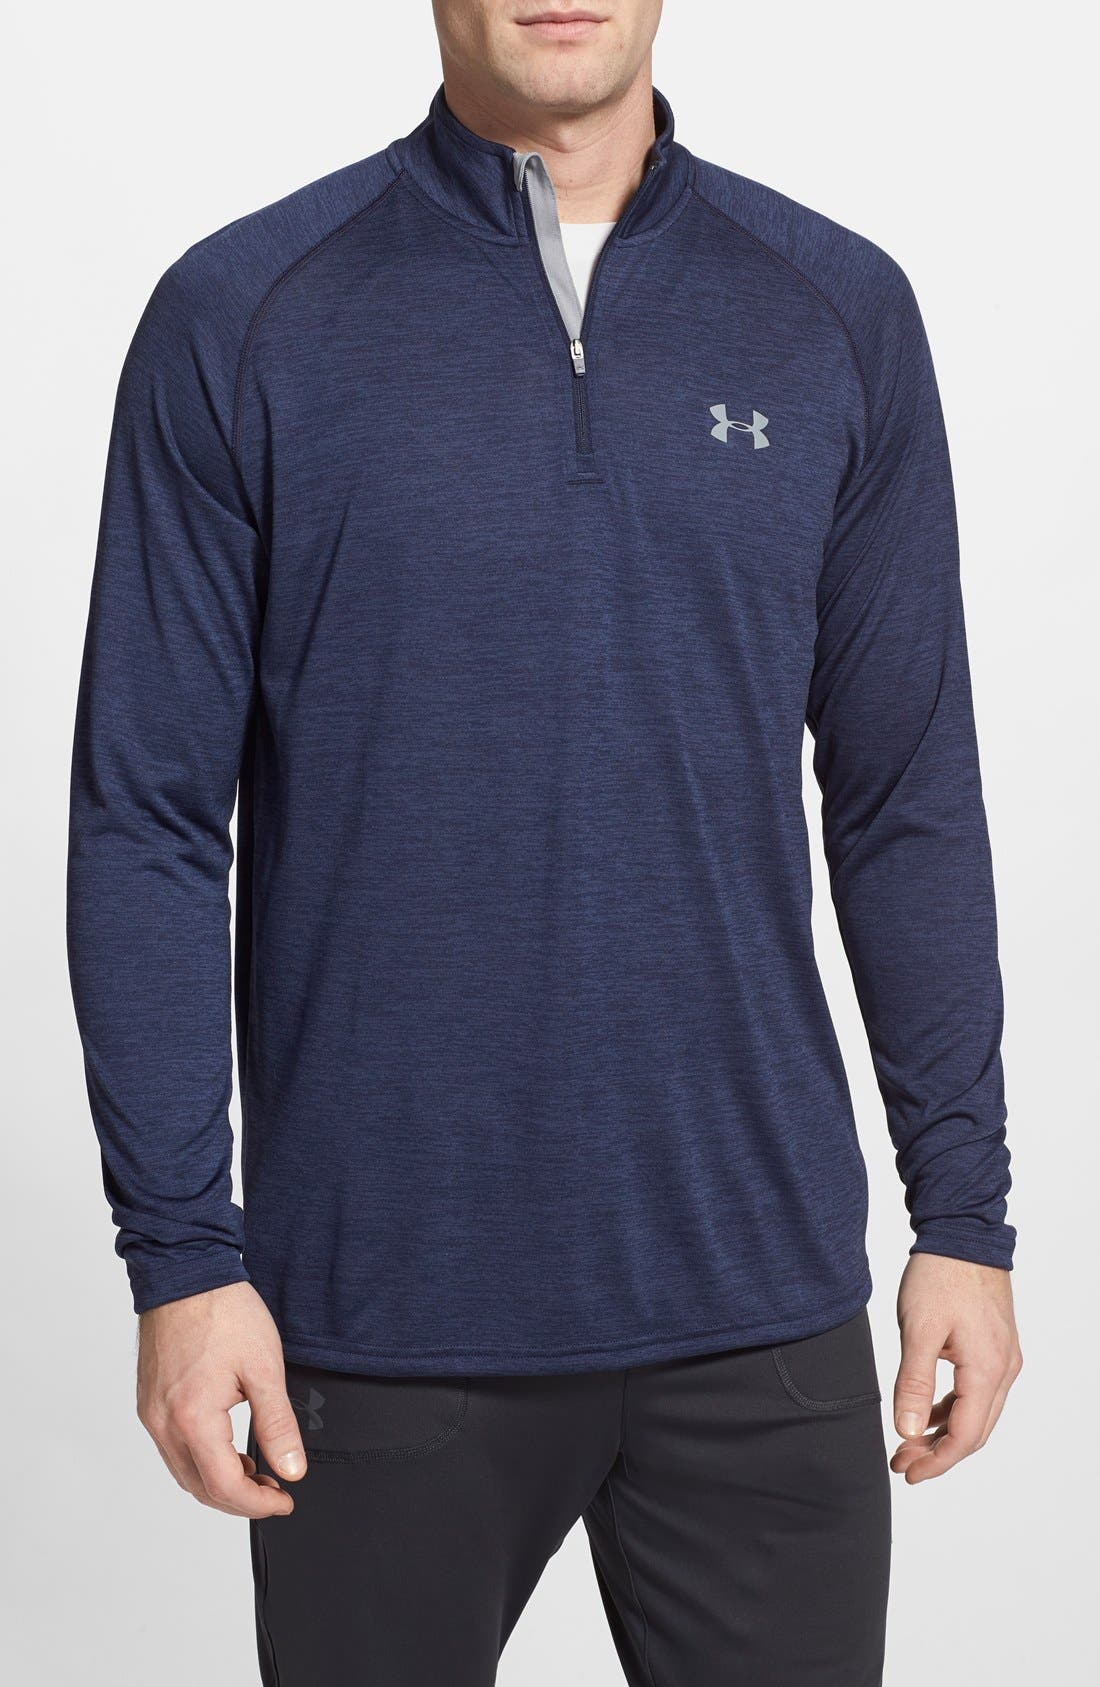 Alternate Image 1 Selected - Under Armour 'Tech' Quarter Zip Pullover